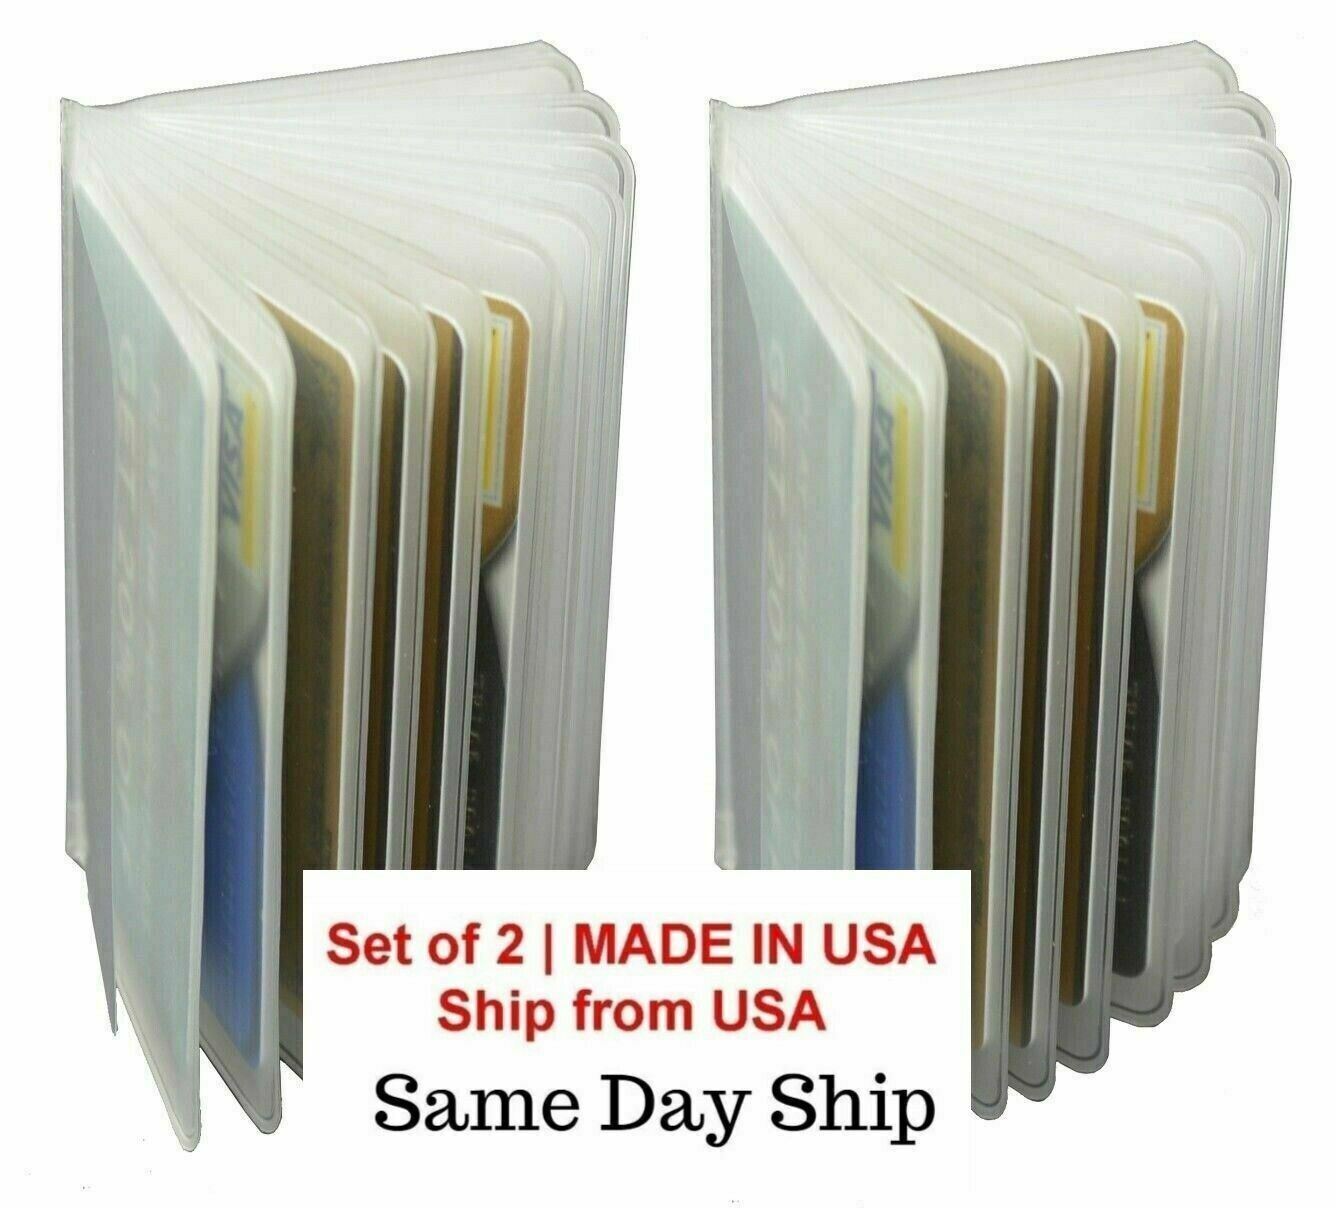 2 Plastic Wallet Insert Replacement Picture Card Holder Trifold 12Pg MADE IN USA